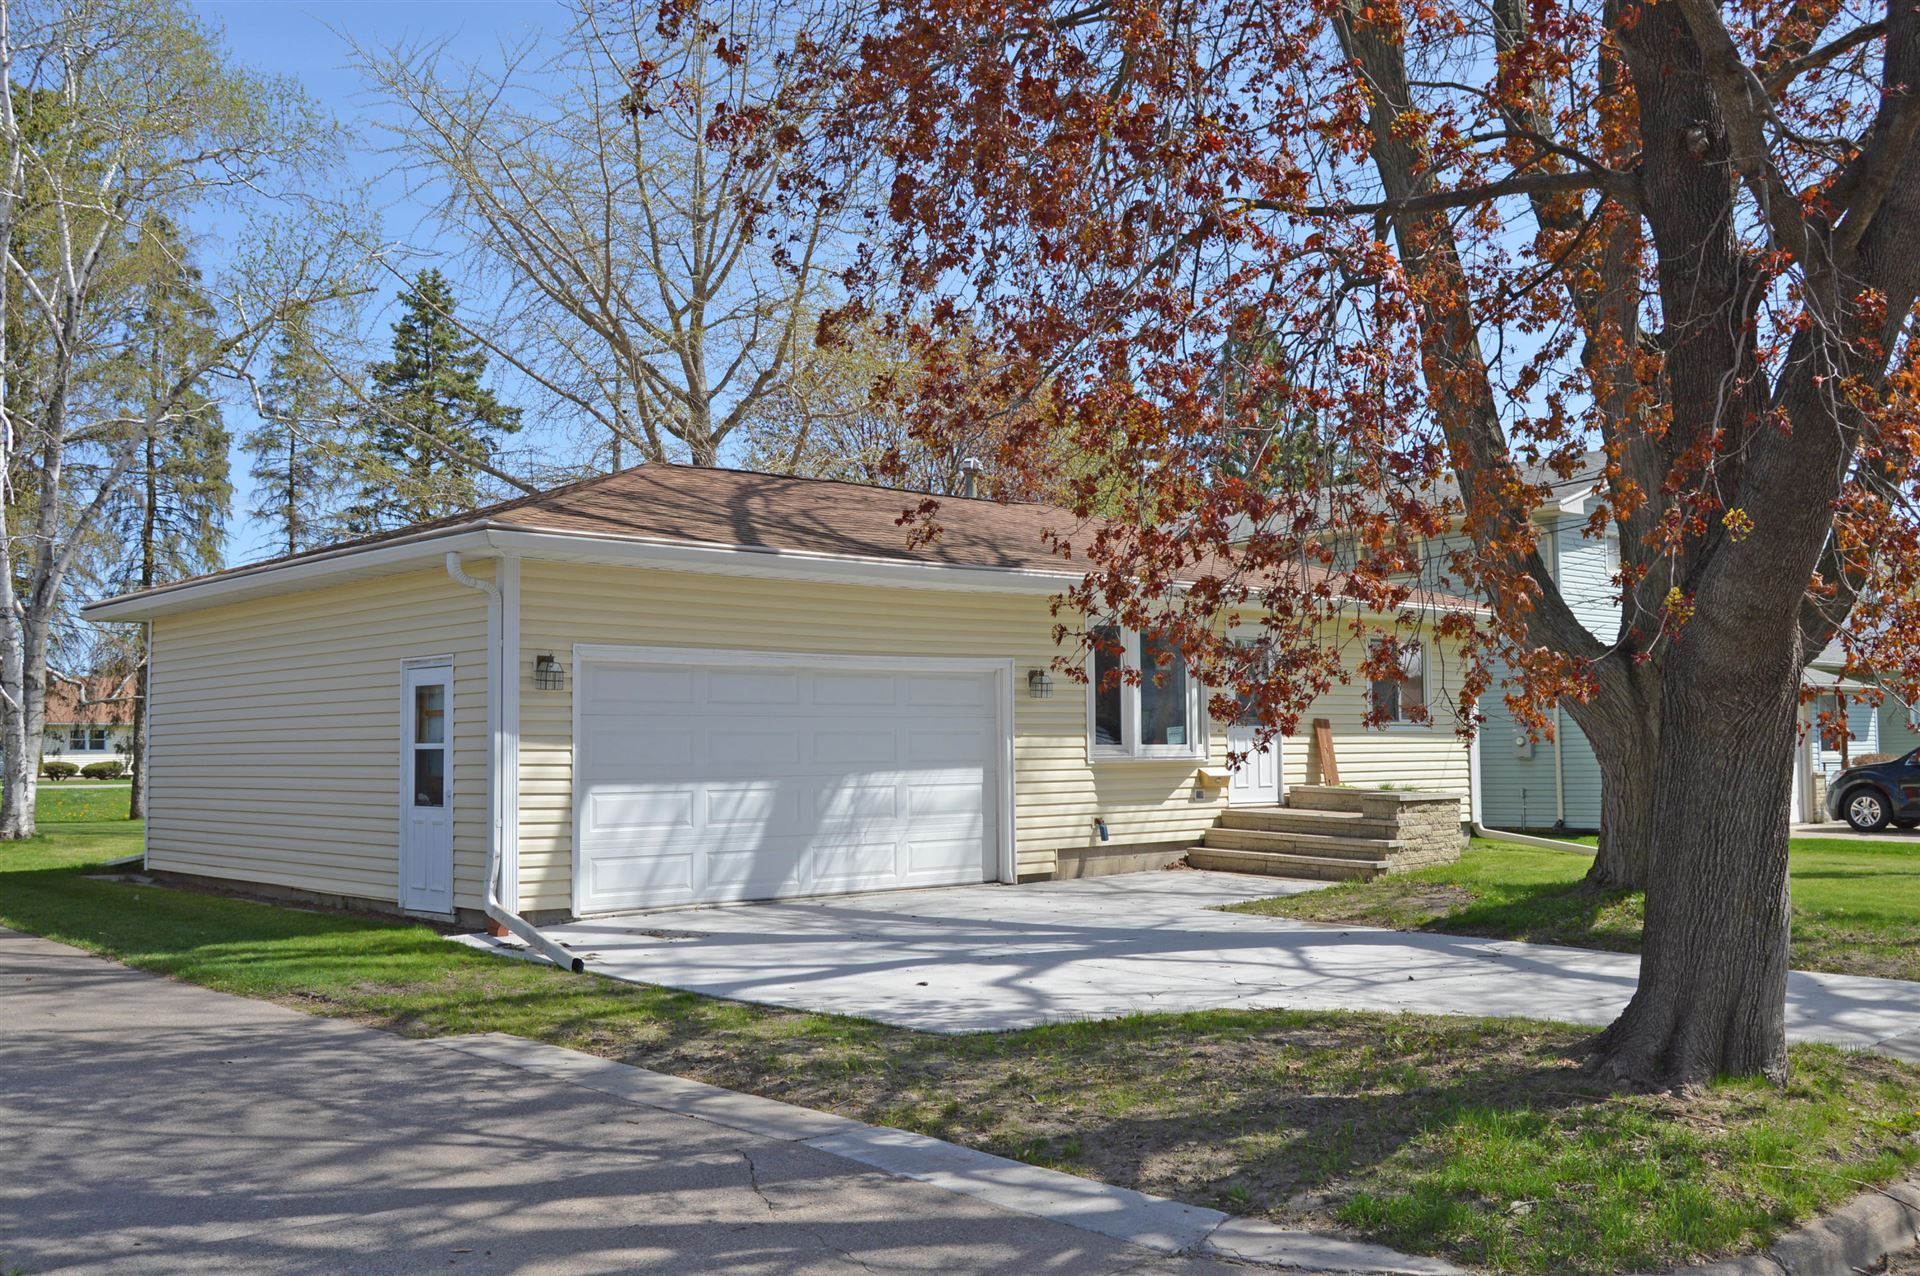 1622 9th St W, Winona, MN 55987 - MLS#: 1667700